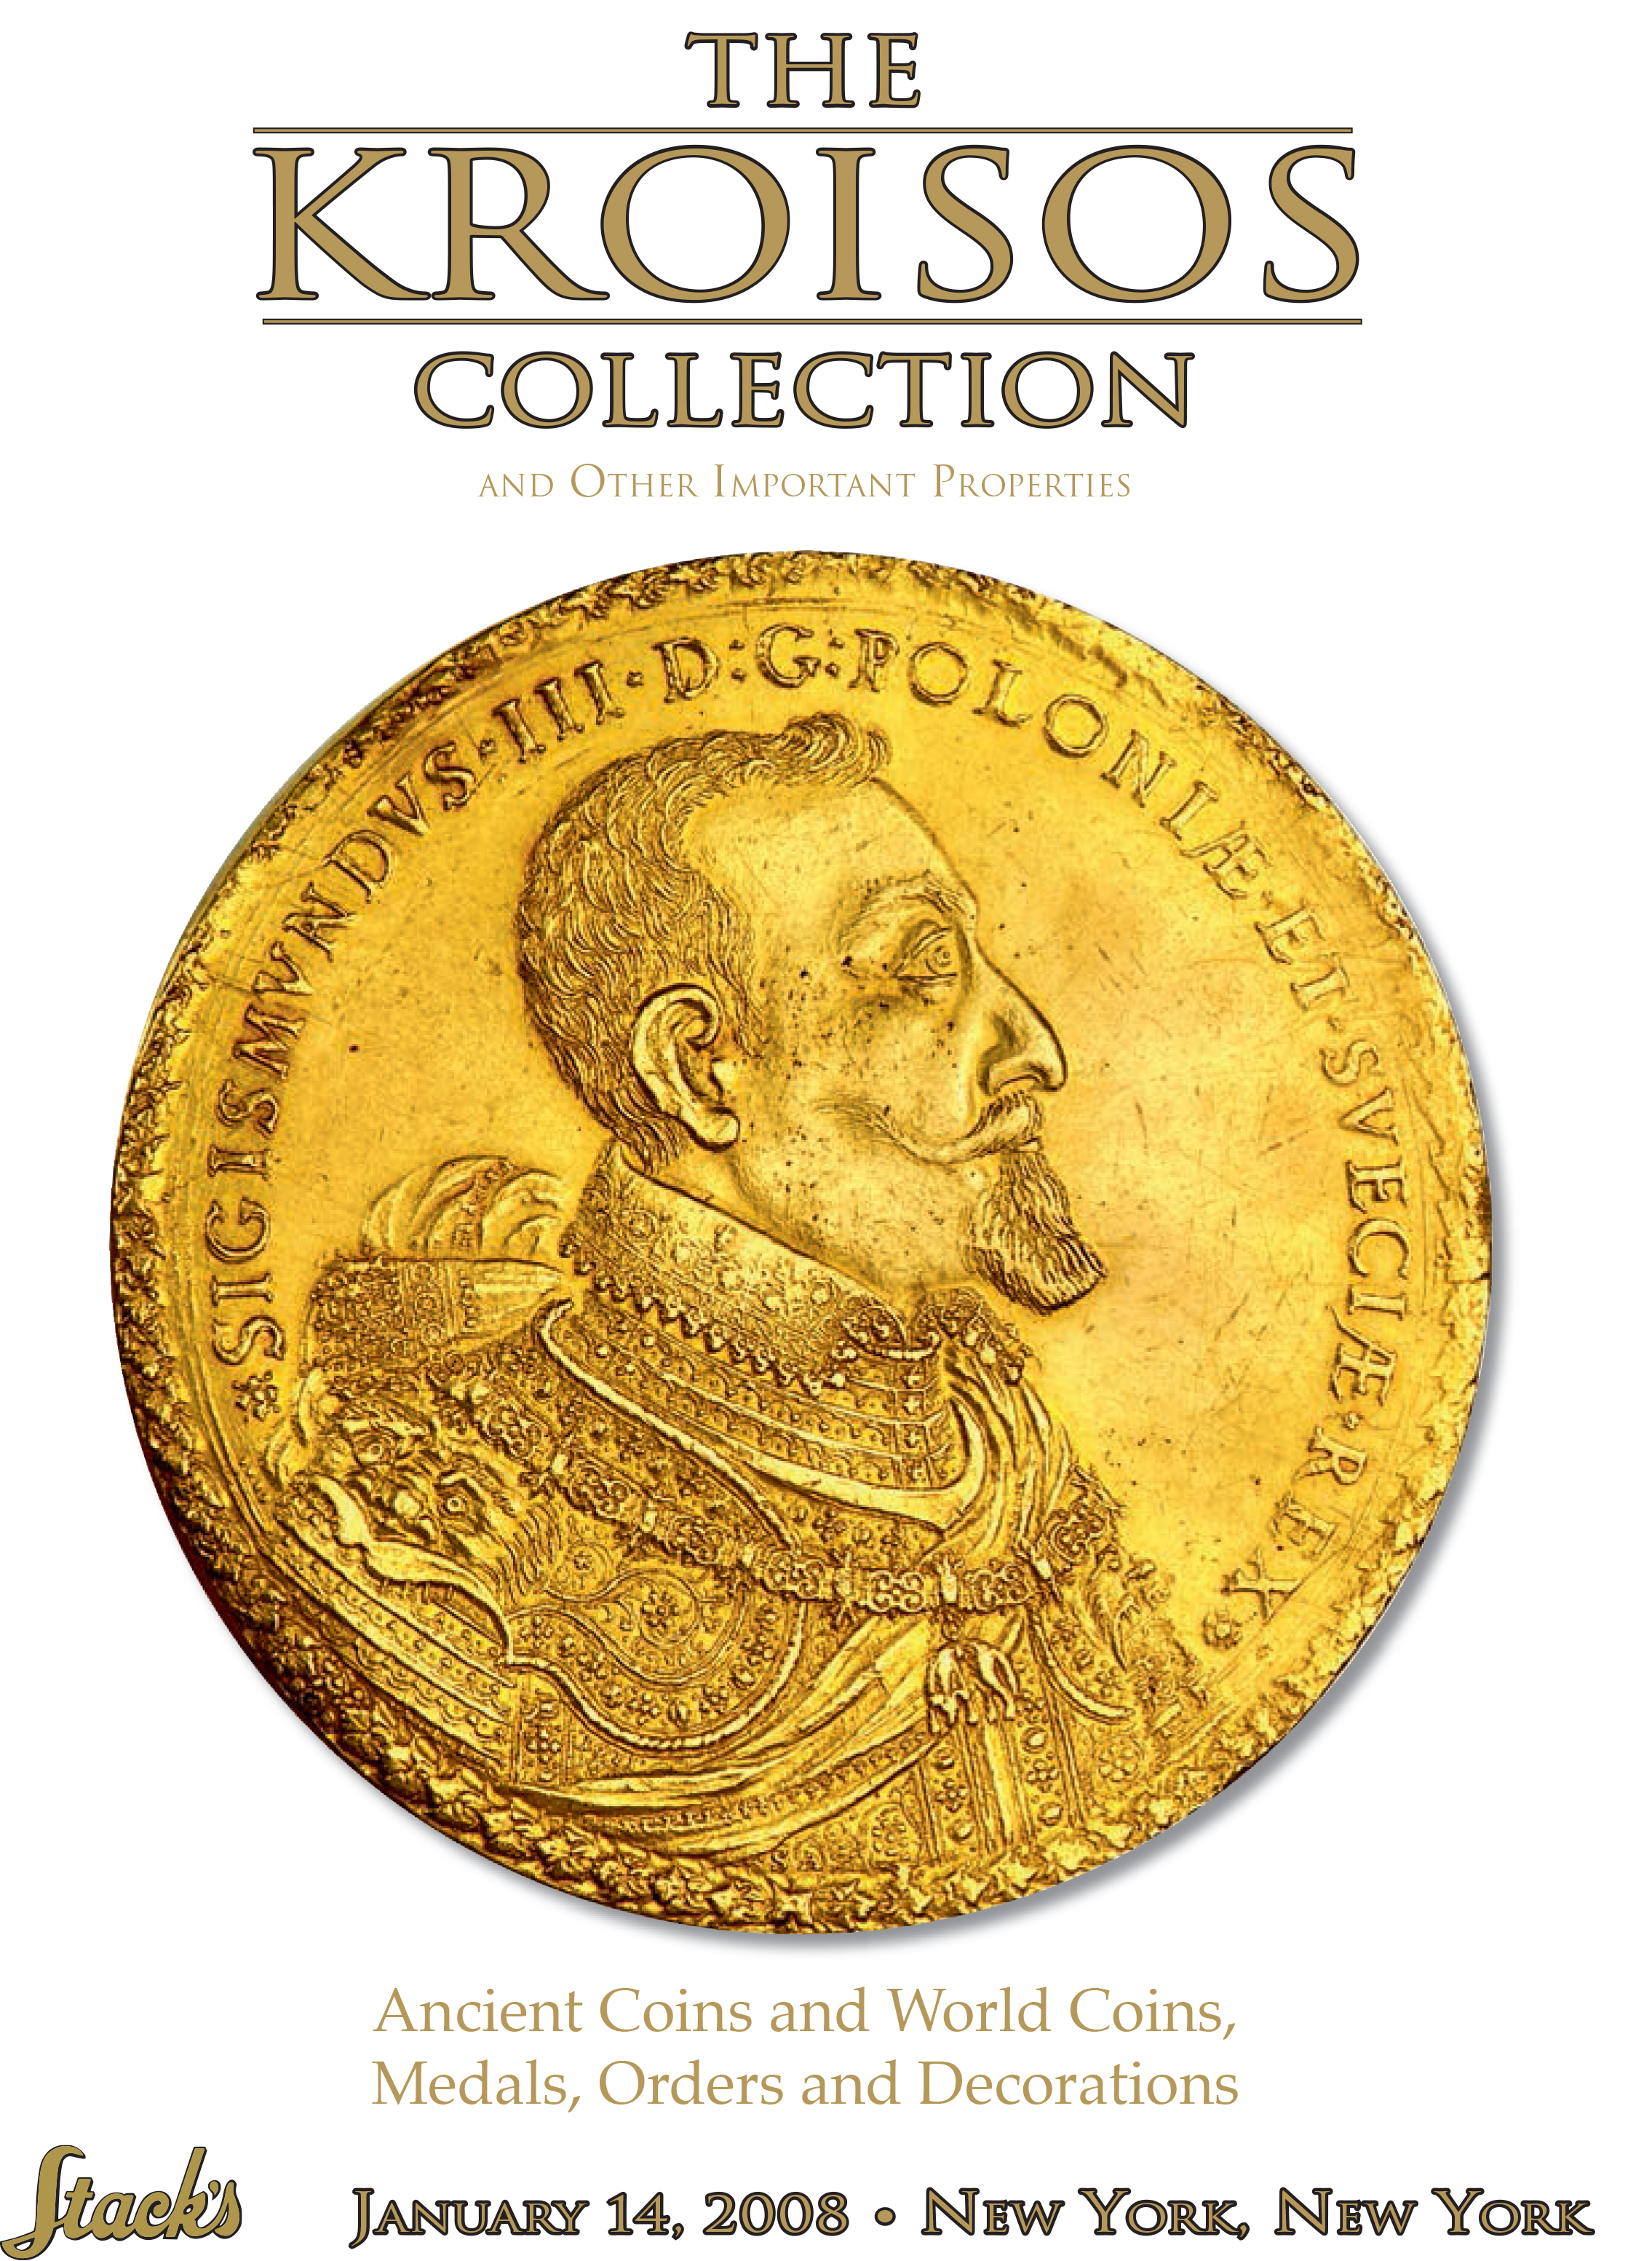 The Kroisos Collection and Other Important Properties: Ancient Coins and World Coins, Medals, Orders and Decorations